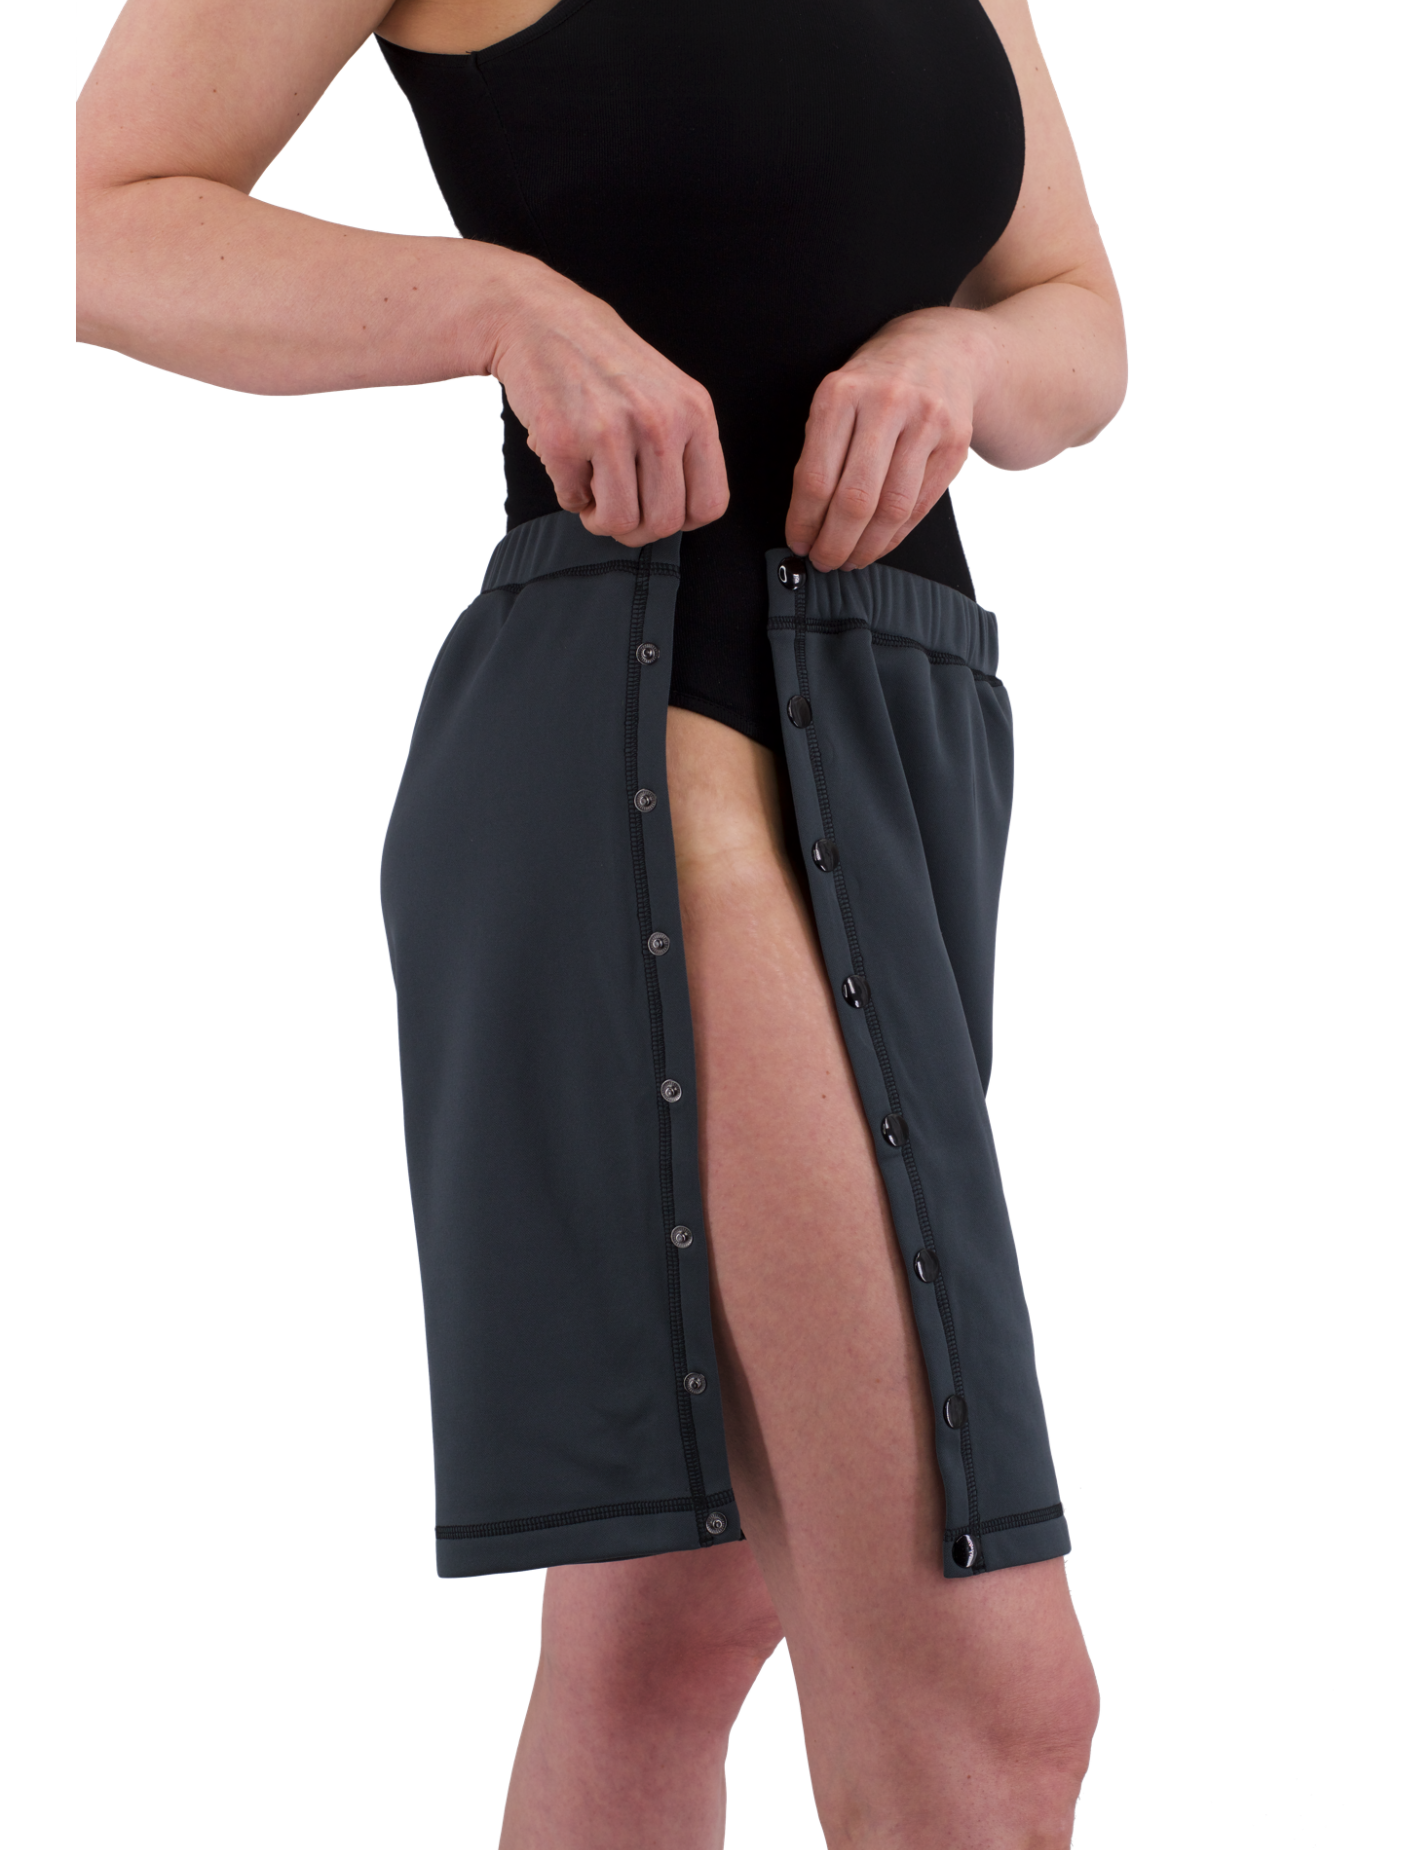 Post Surgery Tearaway Shorts - Men's - Women's - Unisex Sizing